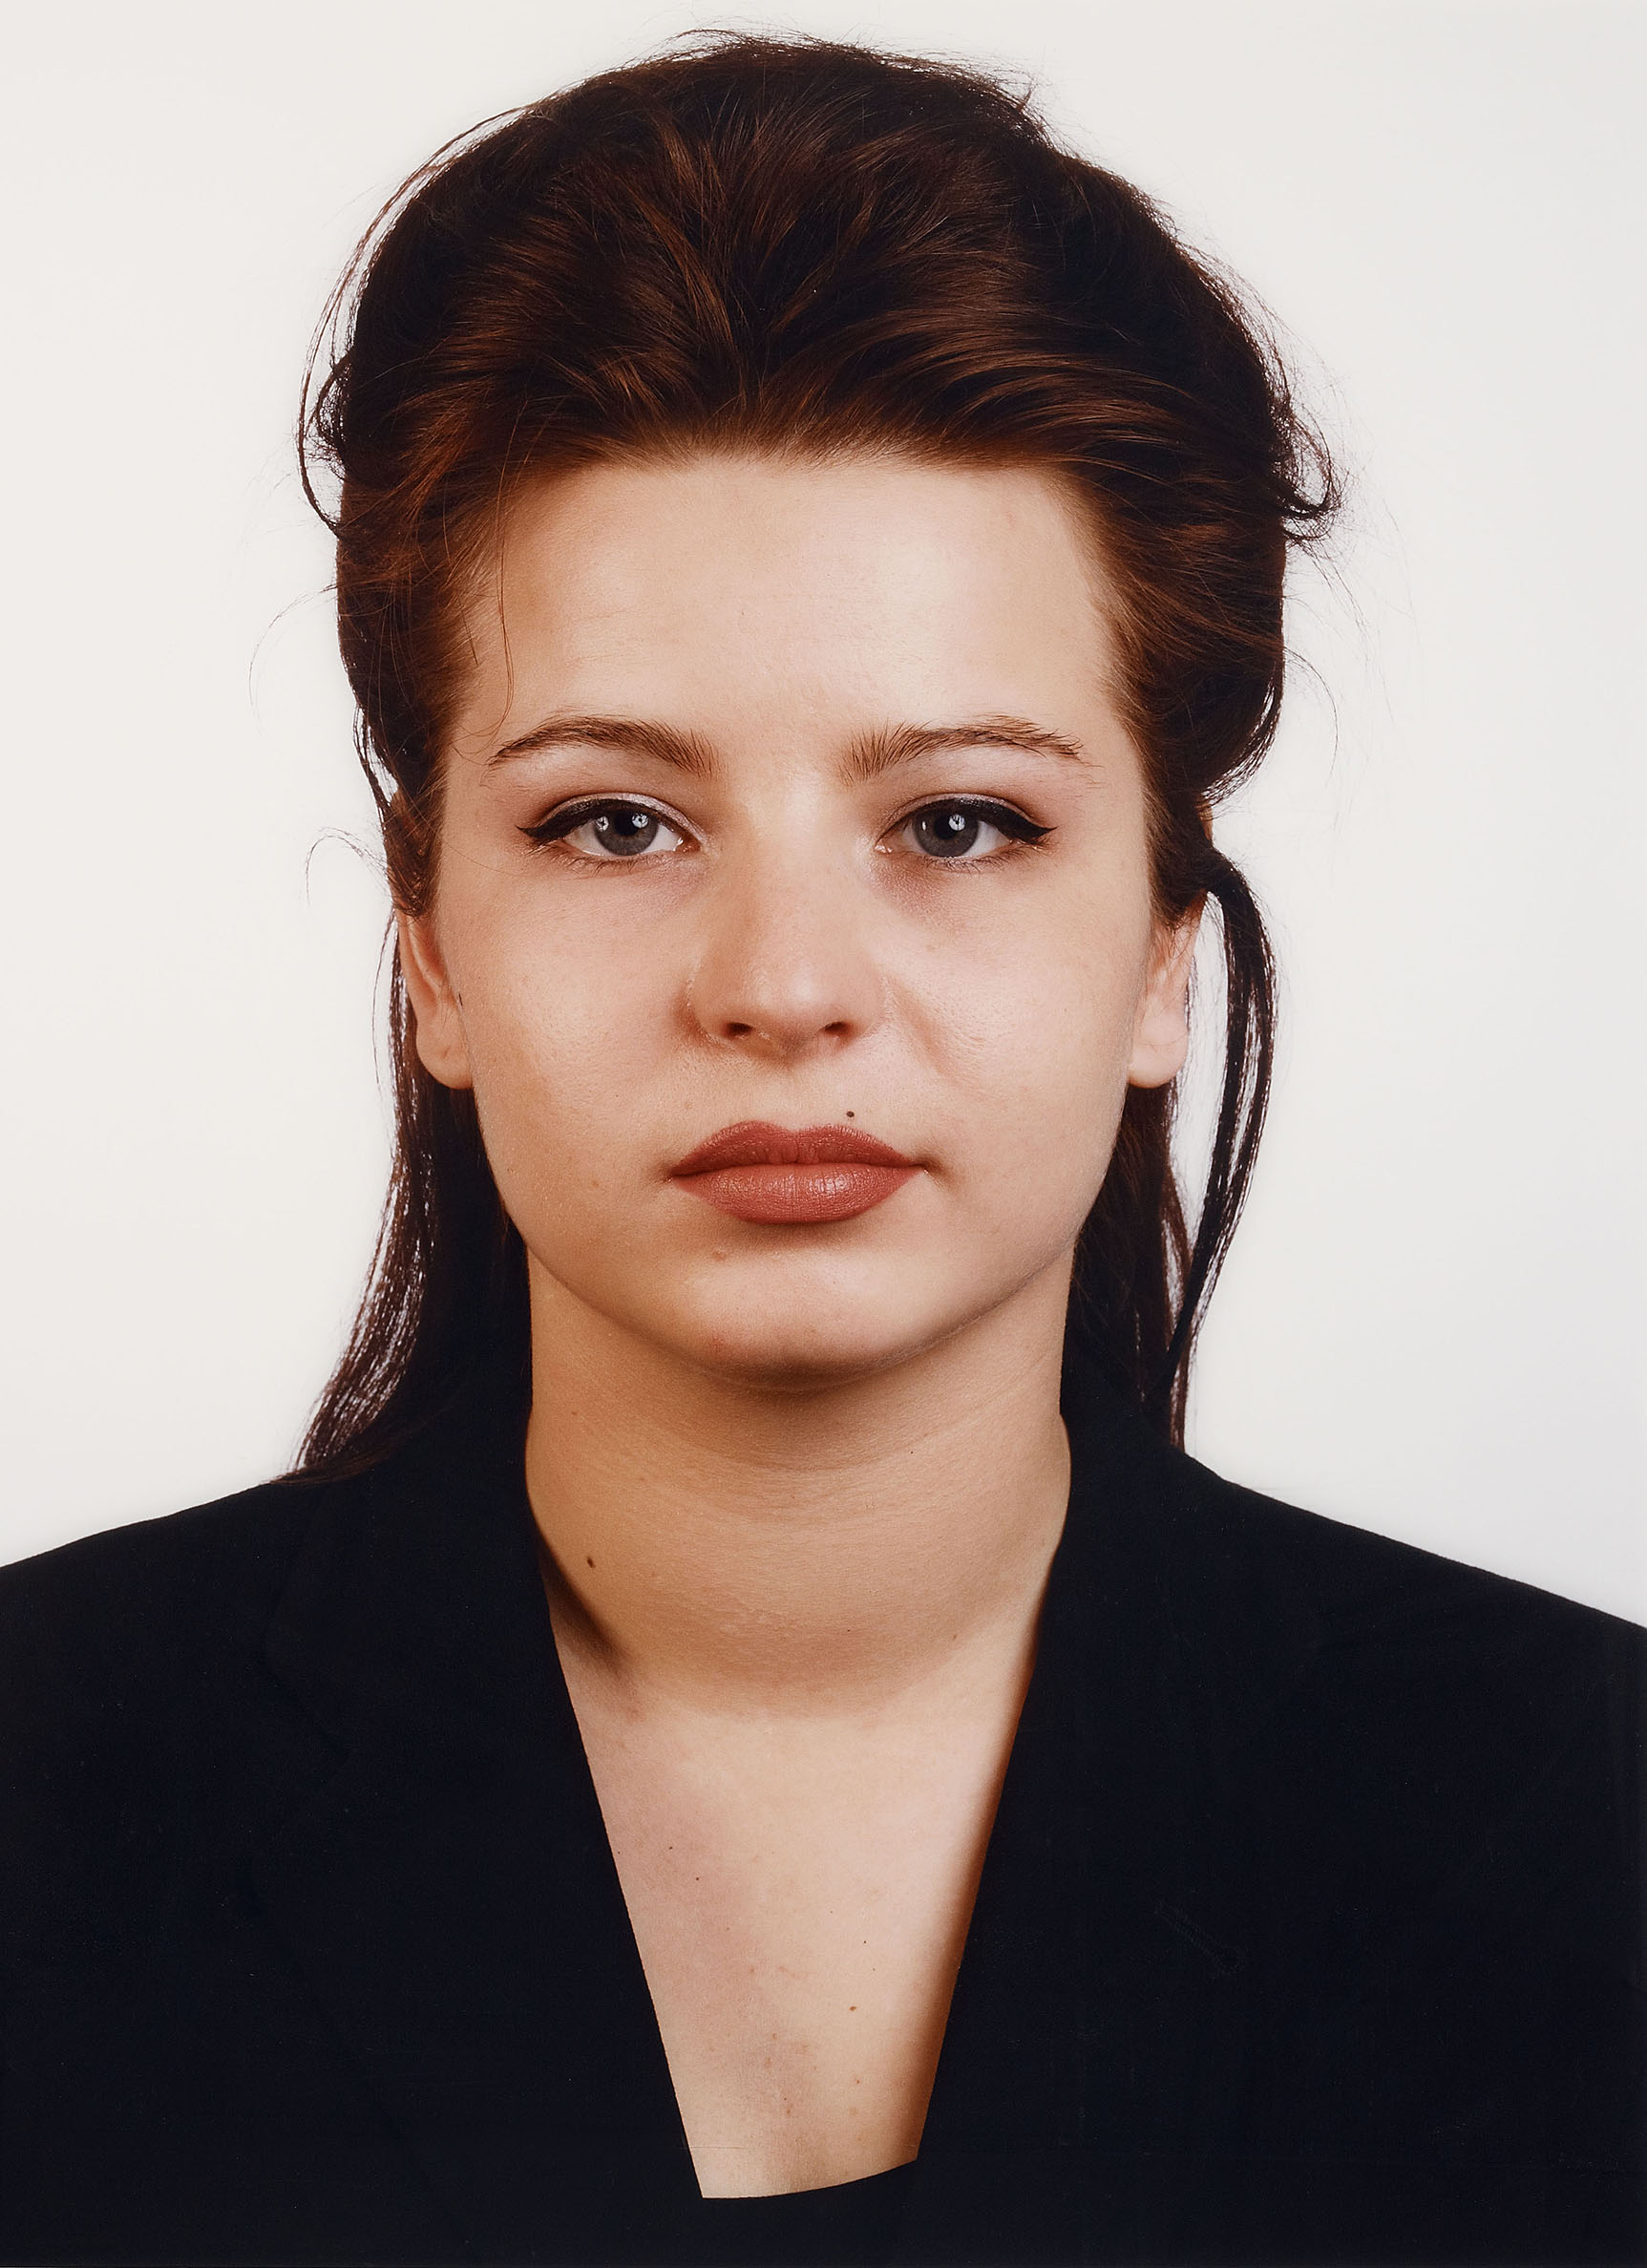 Thomas Ruff, Portrait (J. Renzel), 1988. Chromogenic print, face-mounted to plexiglass, 159.5 x 120.2 cm, Estimate € 25,000 – 30,000